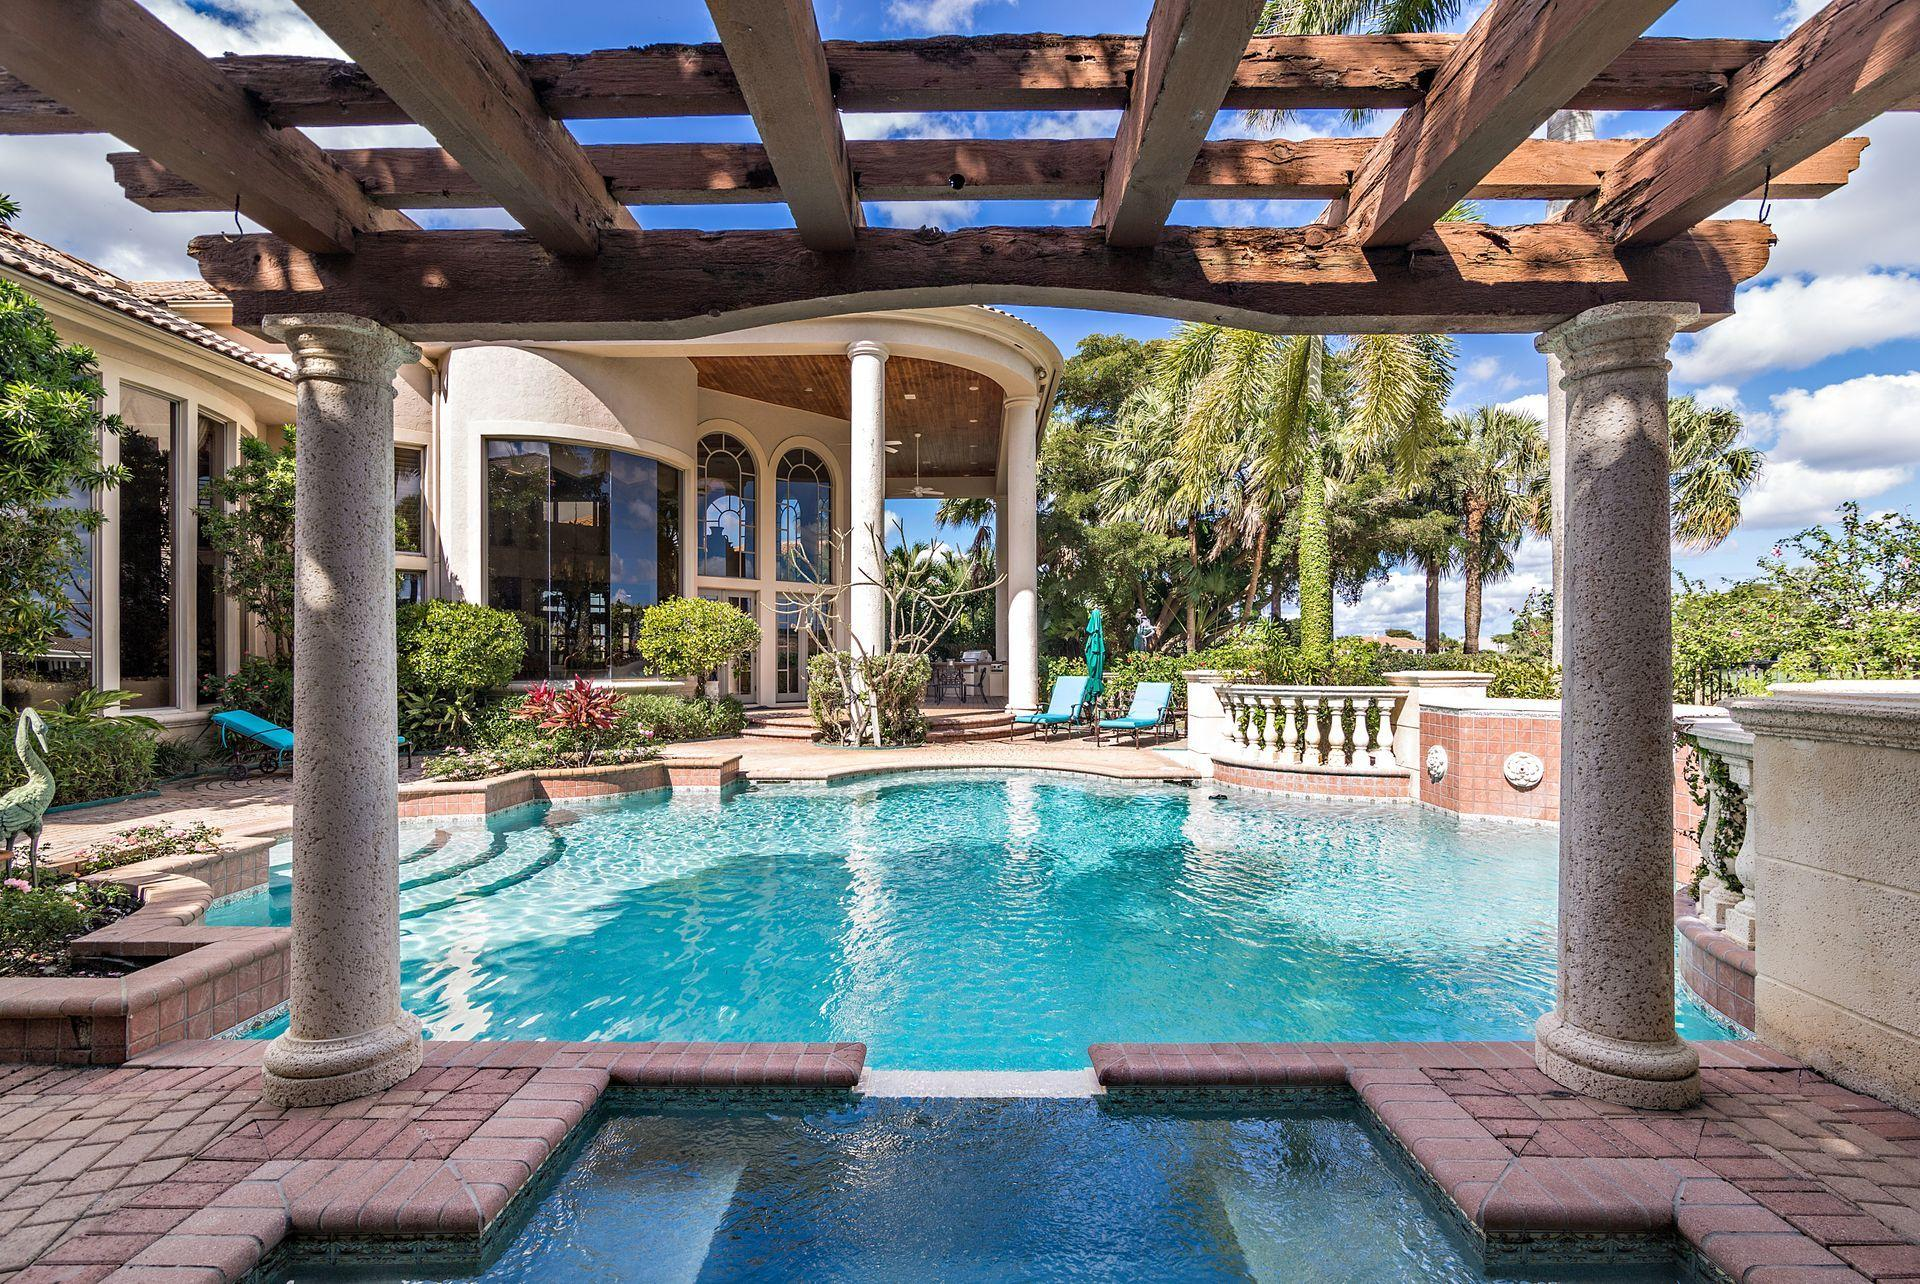 BALLENISLES PALM BEACH GARDENS REAL ESTATE